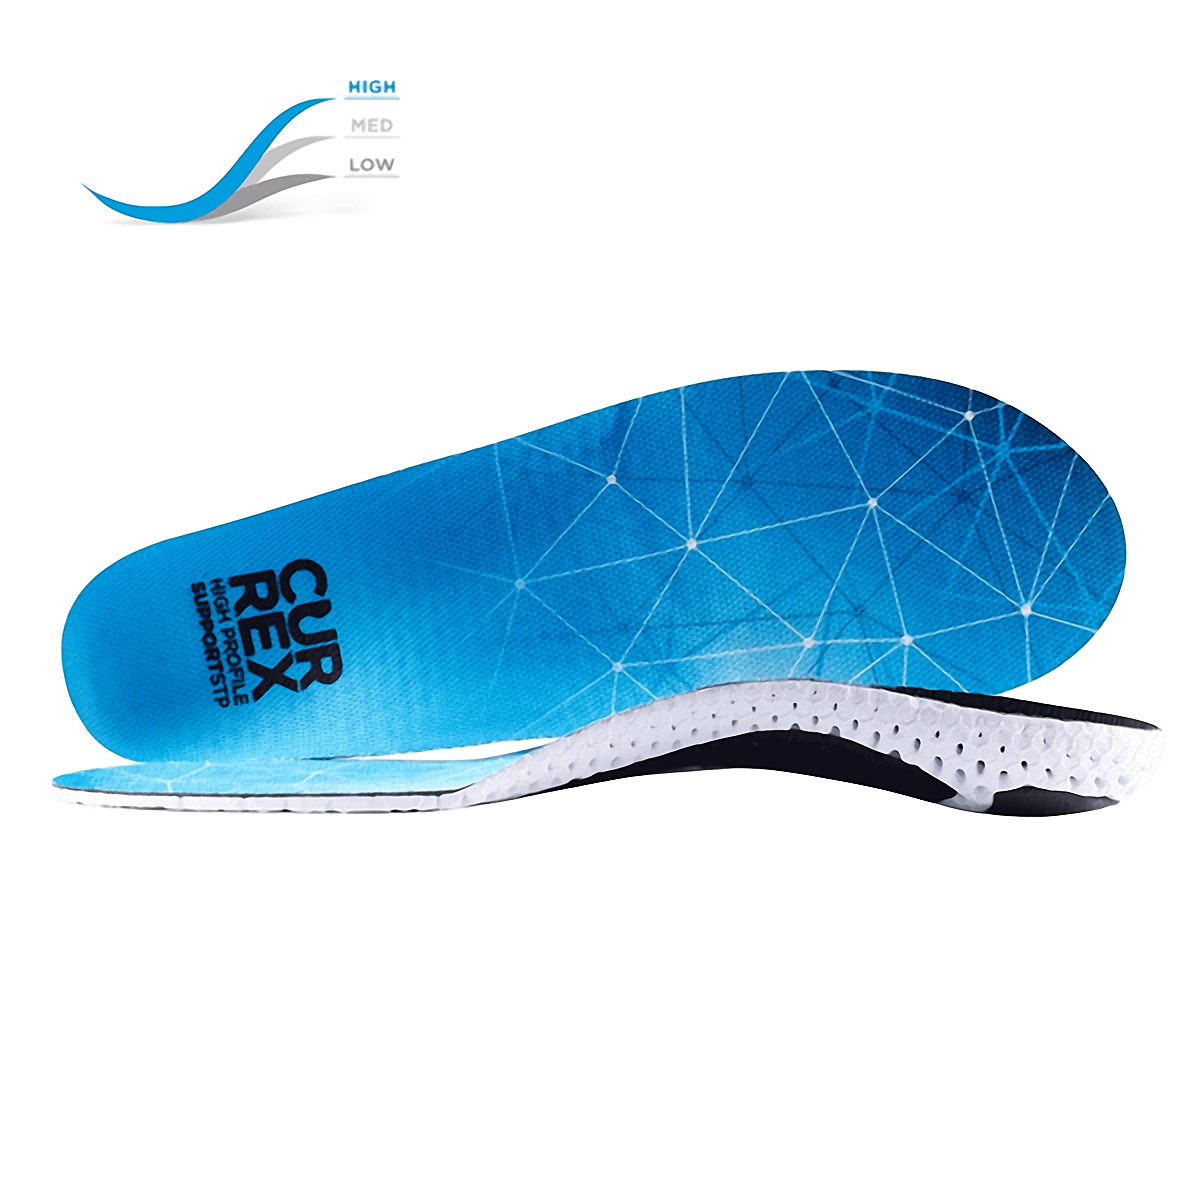 Currex Insole SupportSTP High Profile - Color: Blue Size: XS, Blue, large, image 1